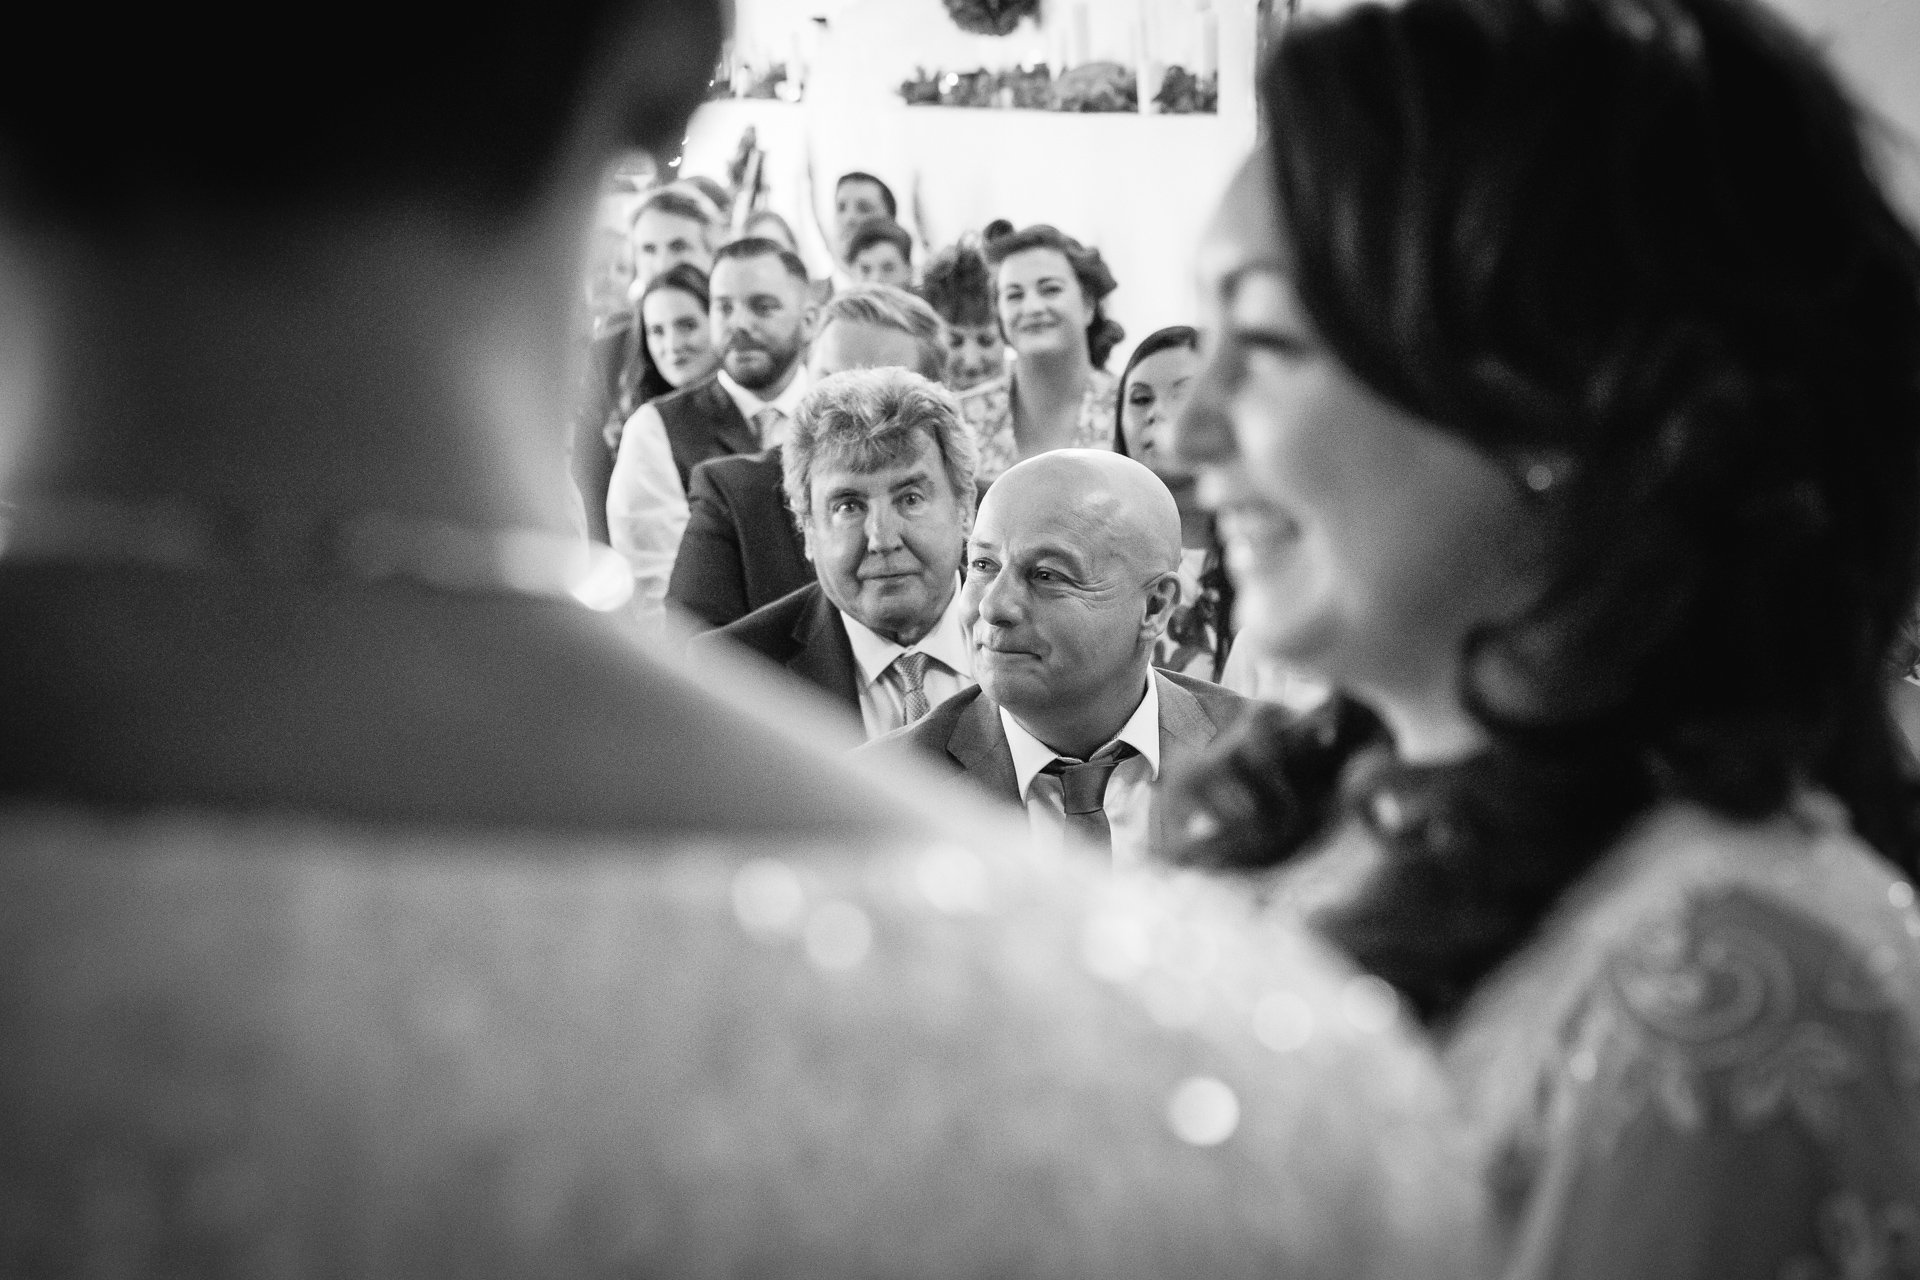 Proud onlookers during the ceremony of two brides at The Bull Hotel in Kent